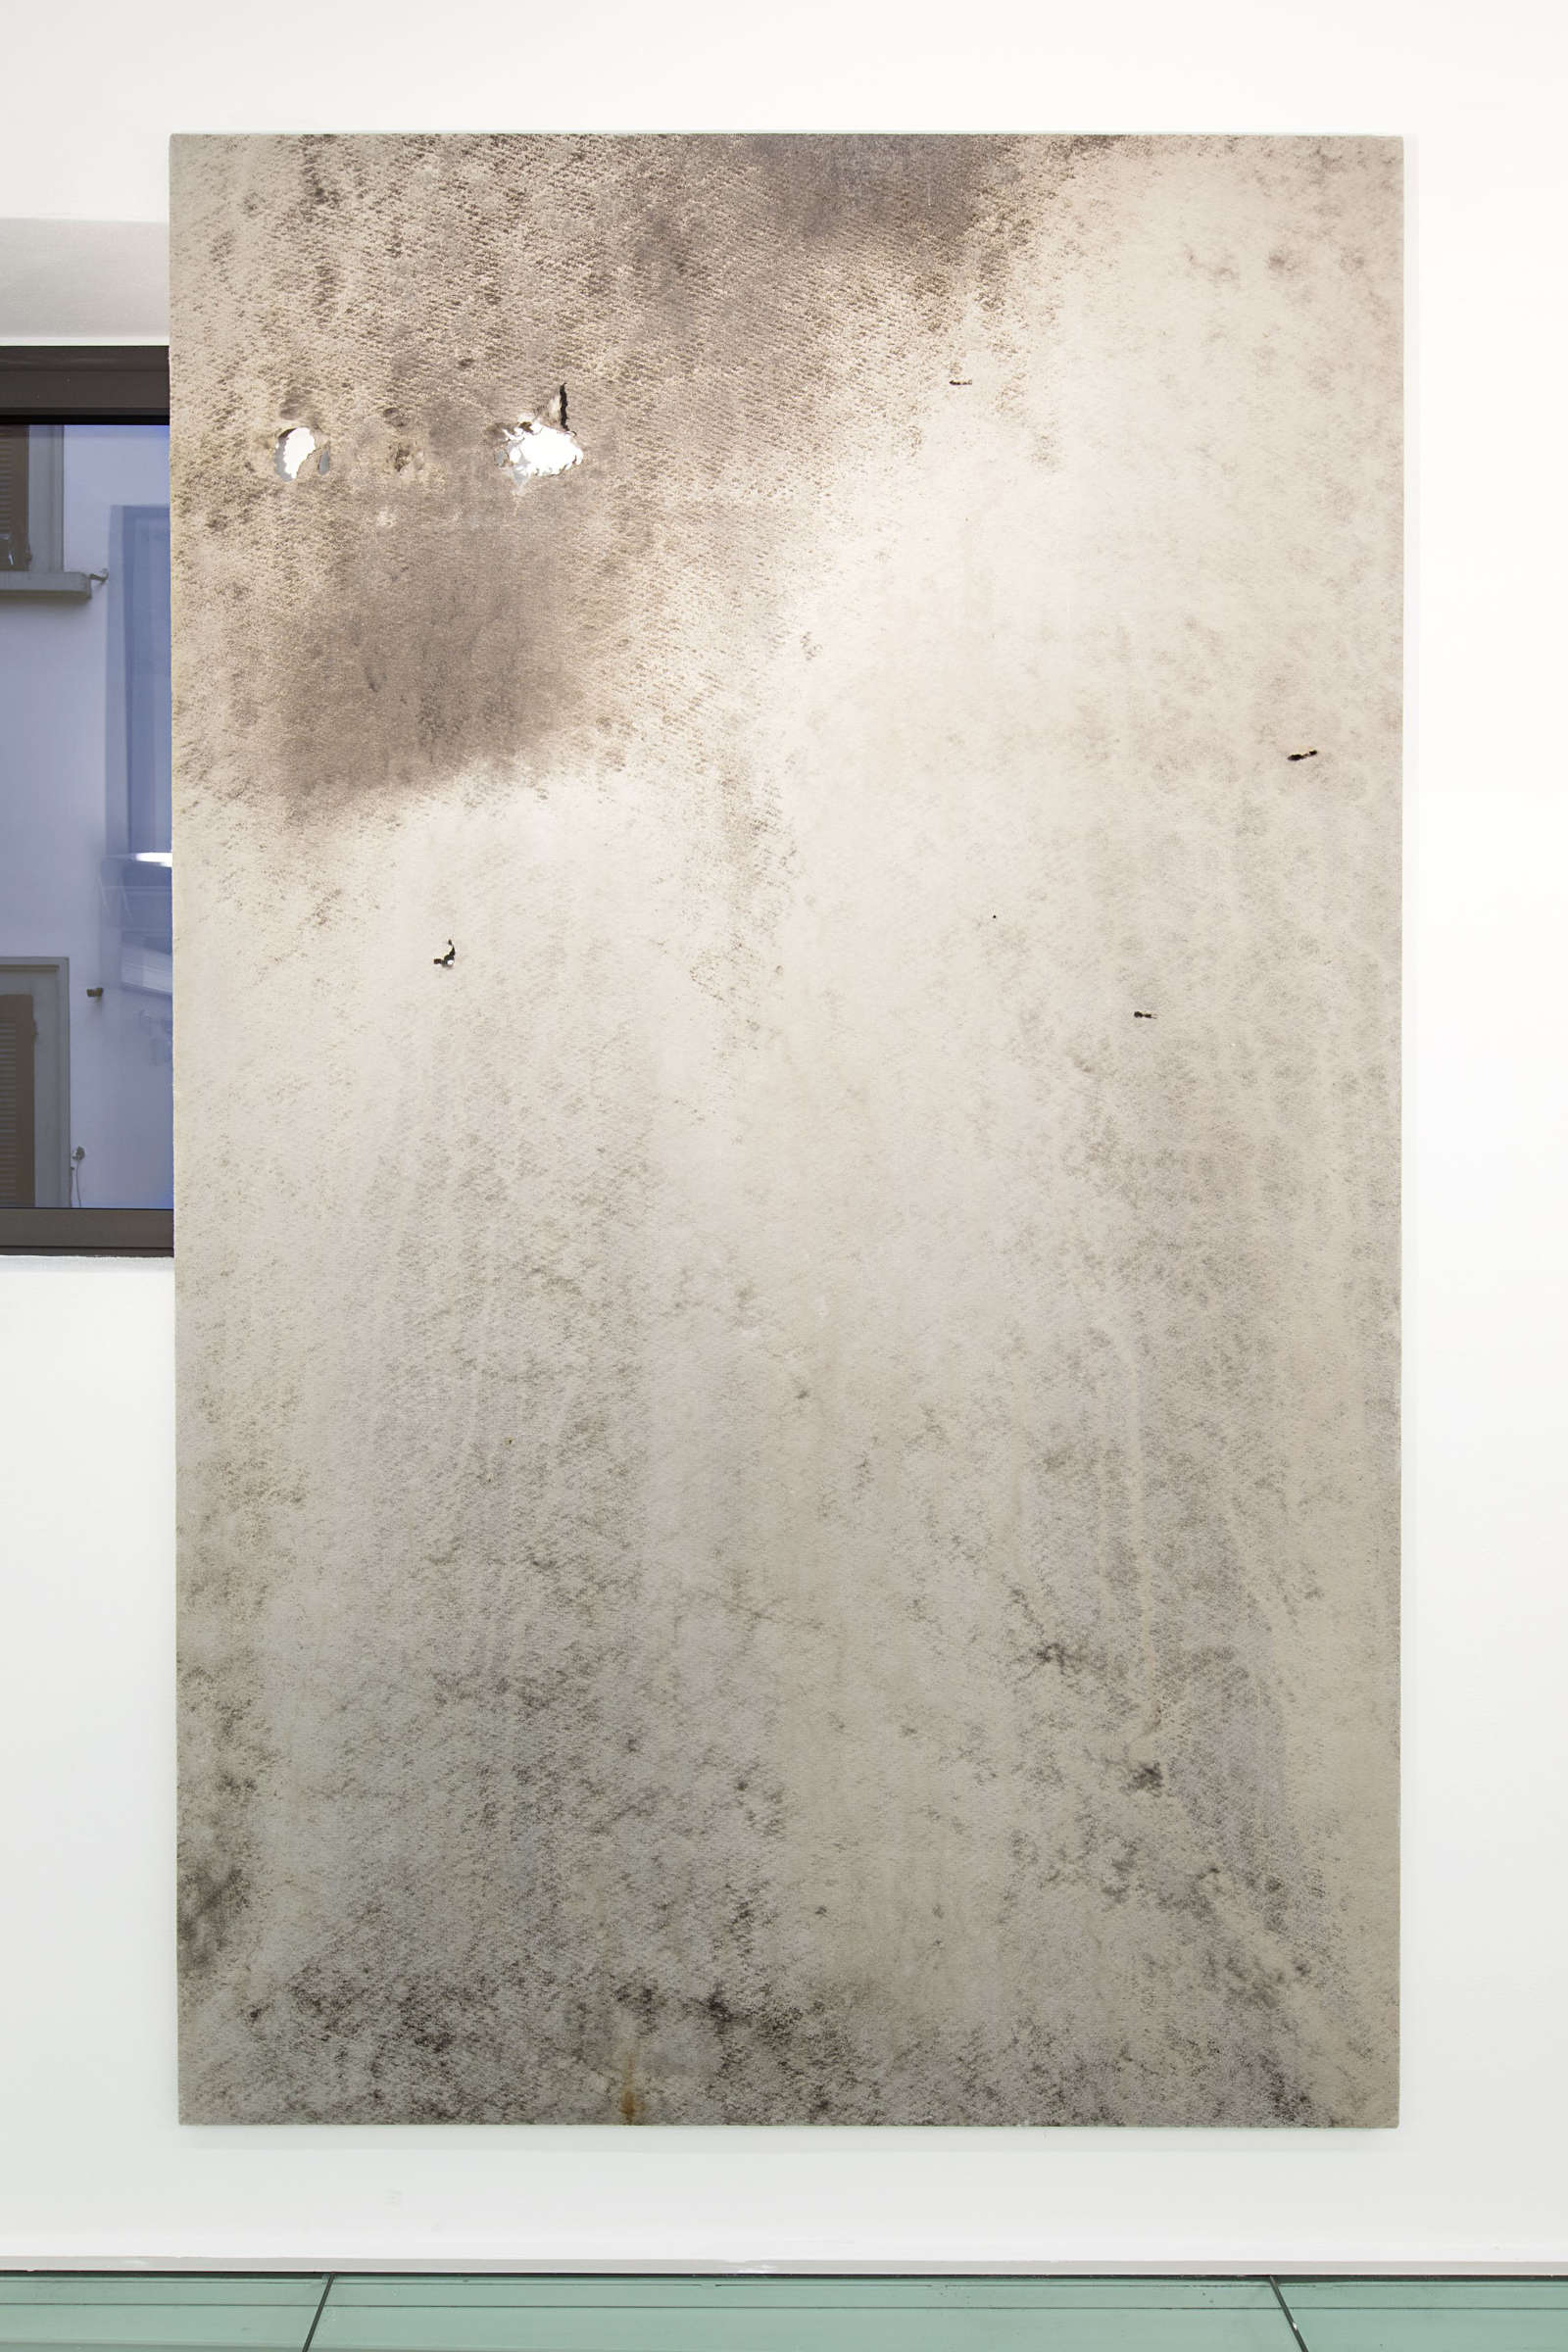 25_Tiziano Martini, 2015, untitled, soil, dirt, rust, plant debris and vinilic on non-woven fabric mounted on wooden stretcher bars, installation view, photo Andrea Rossetti